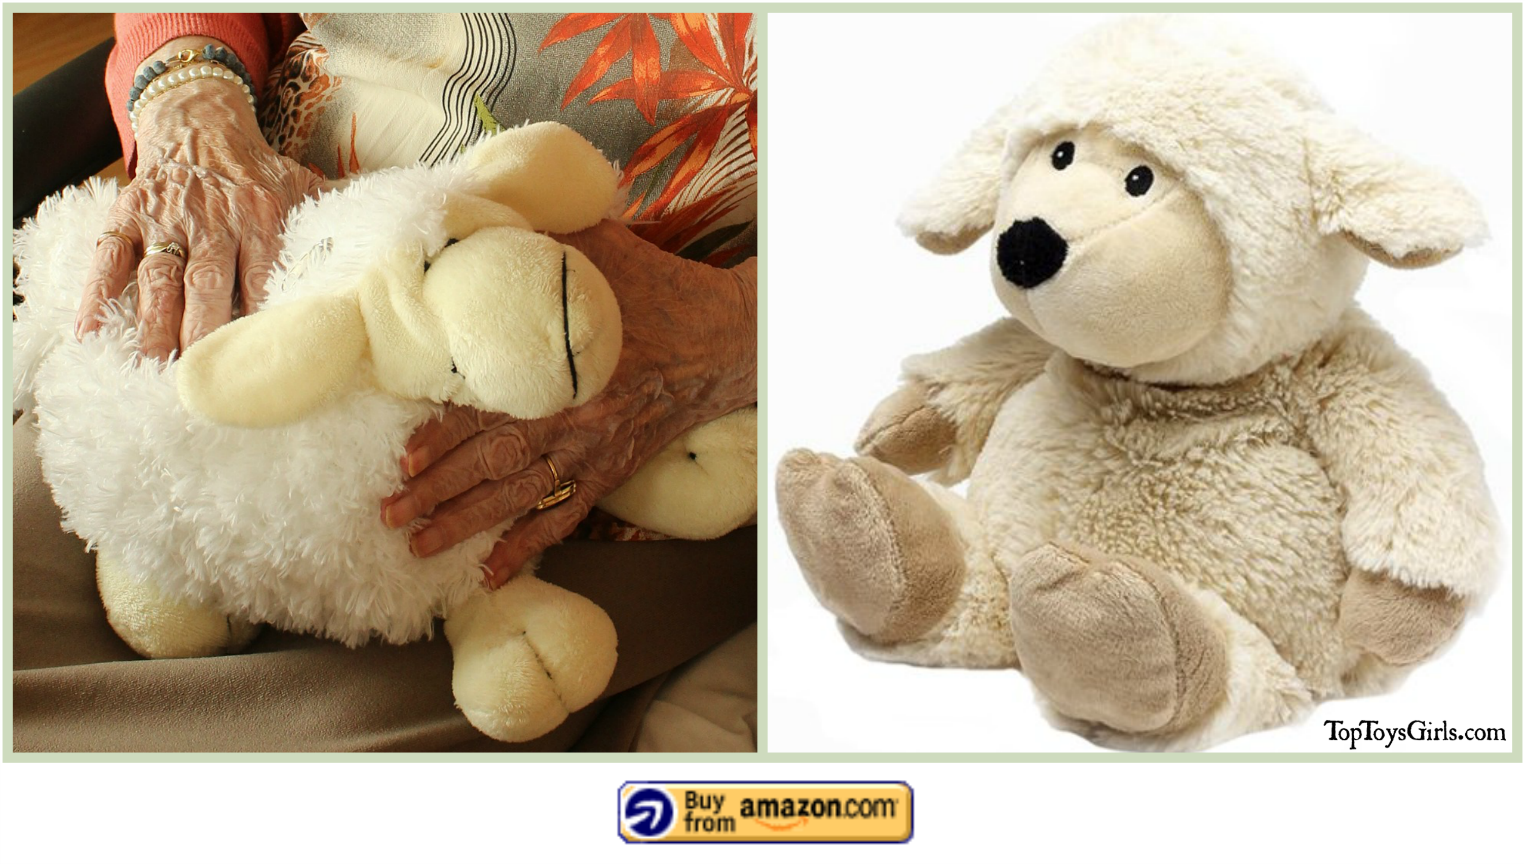 Microwave Plush Animals Are Nice for the Elderly Too